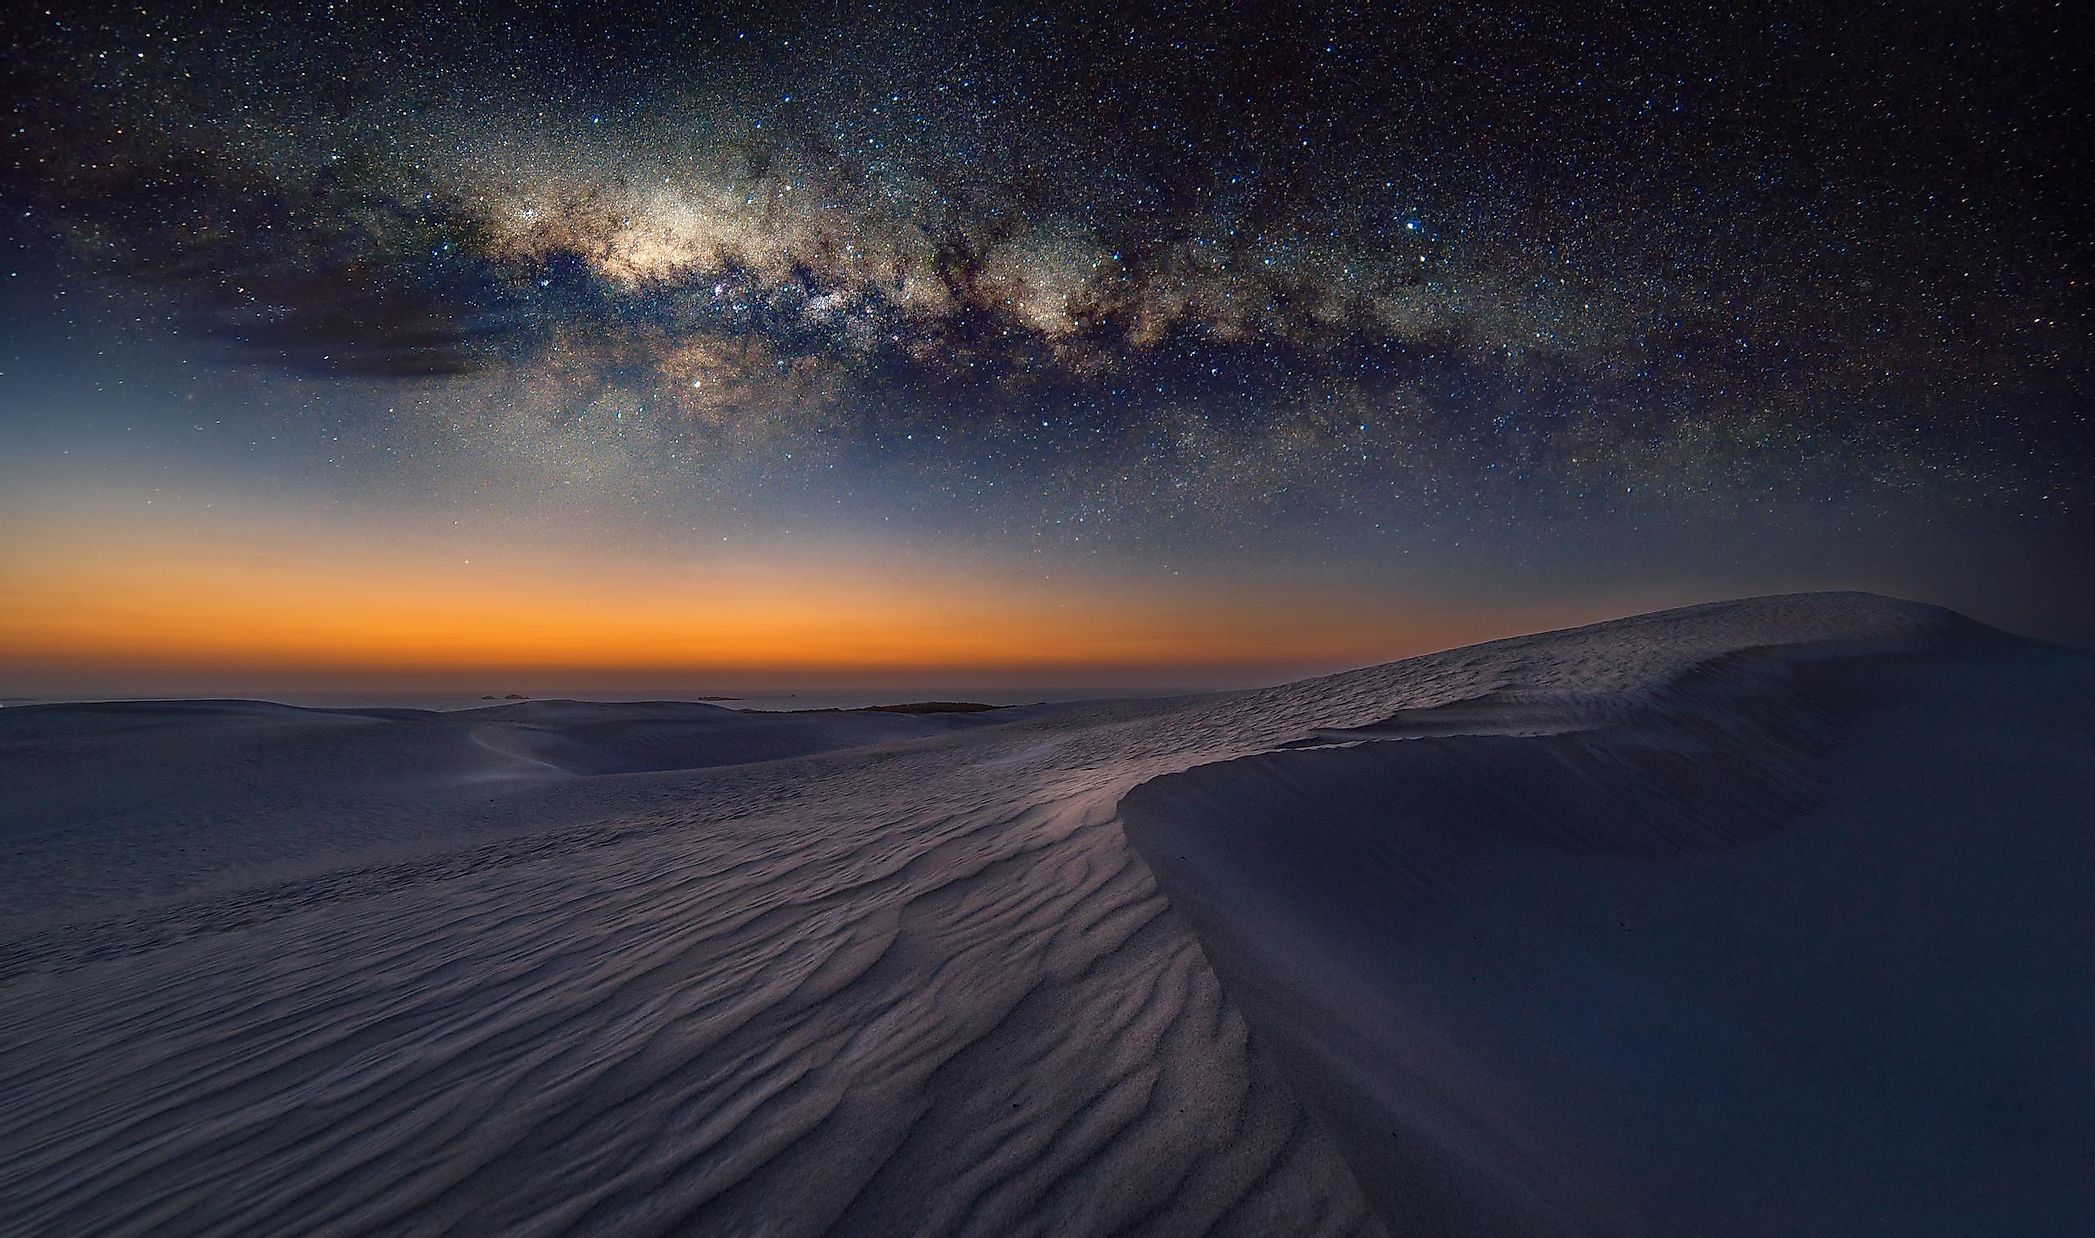 Why Are Nights Cooler In Deserts?